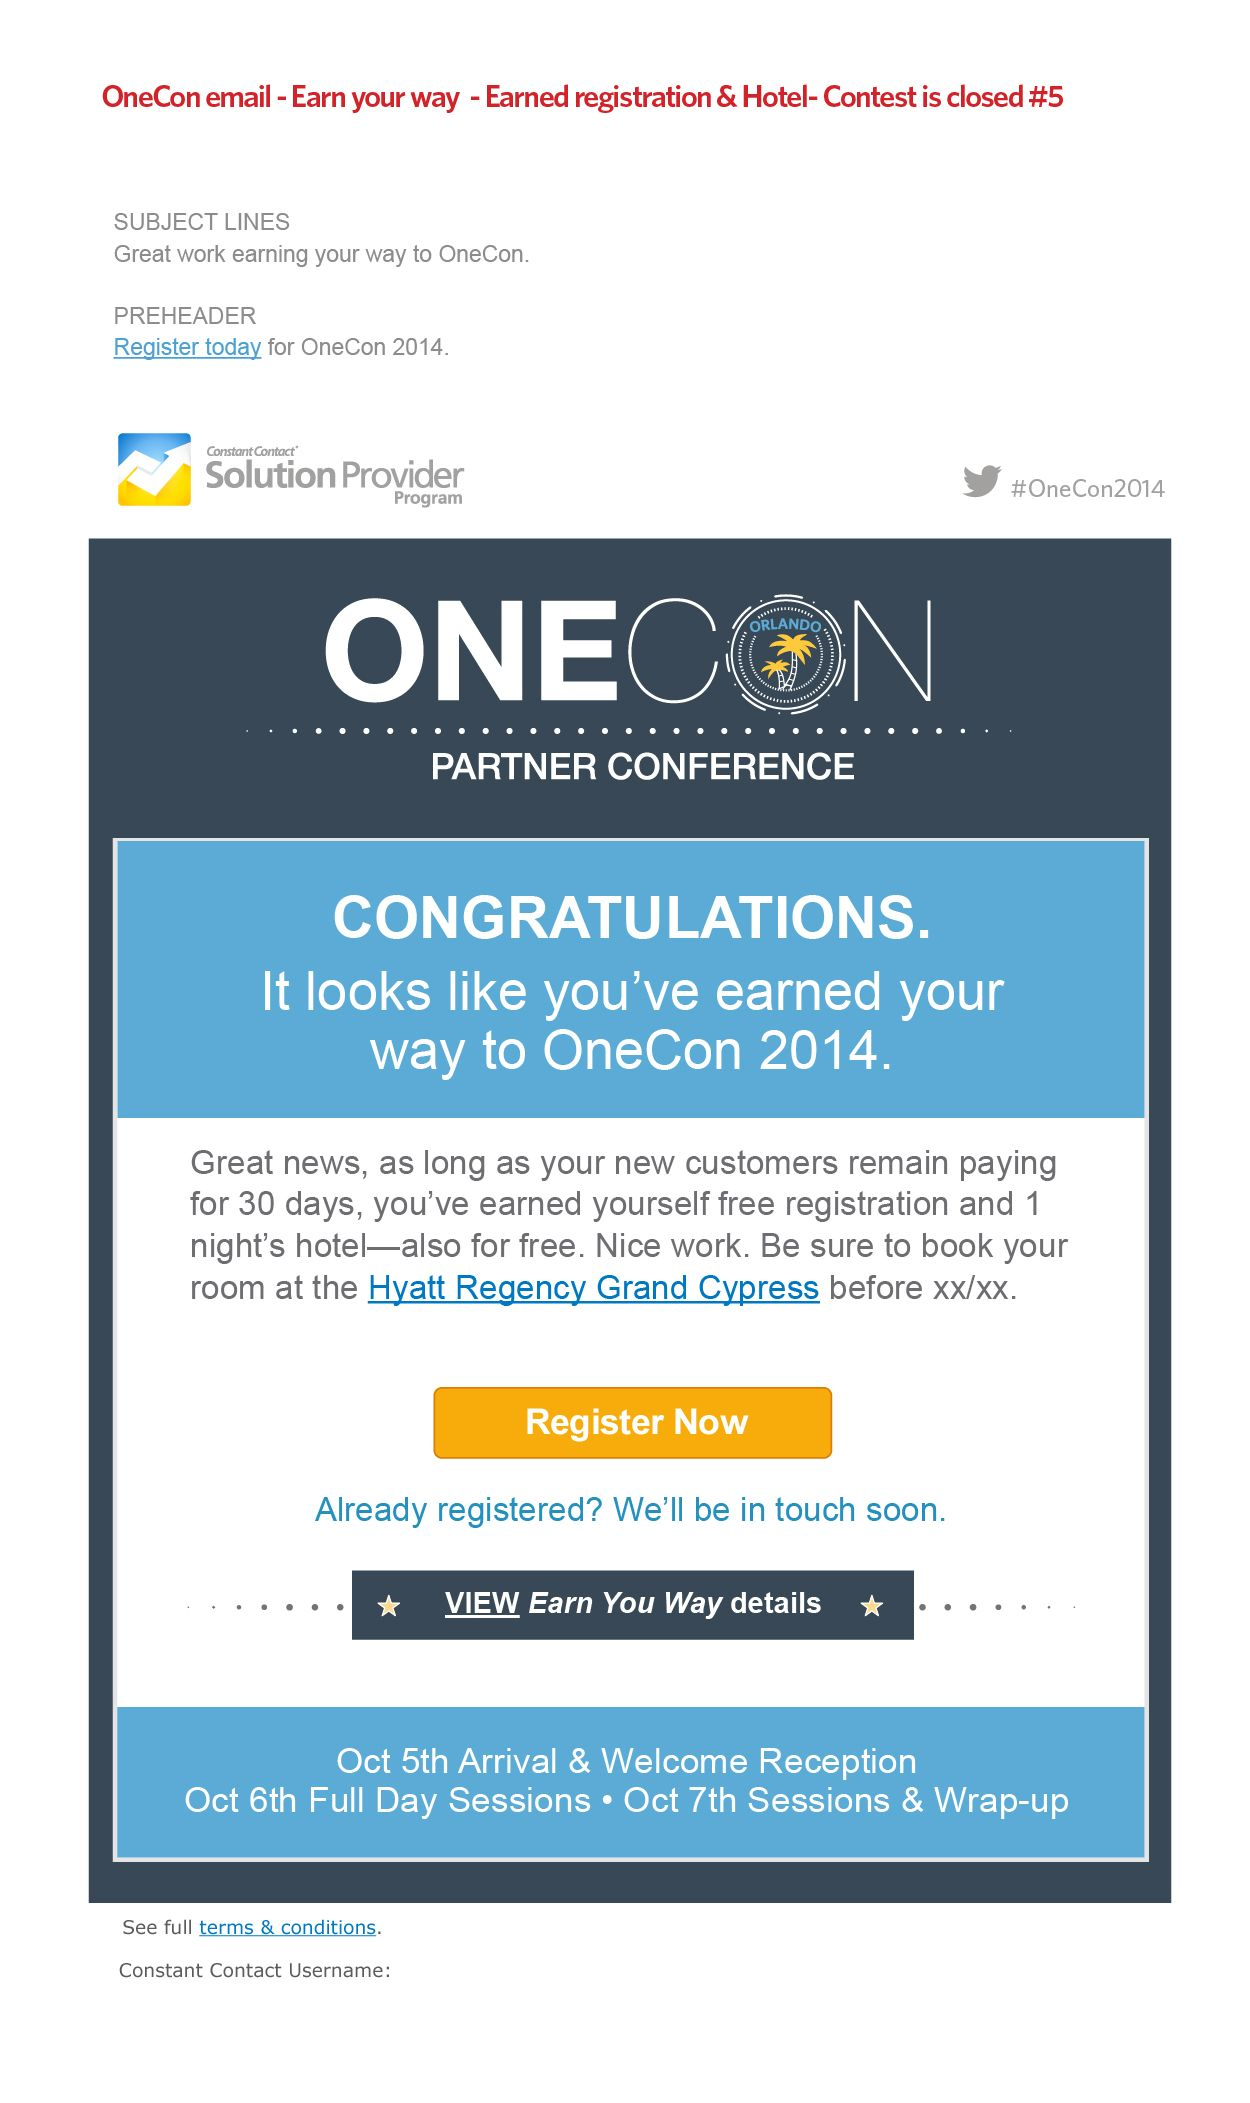 Email Promotion To Conference  Campaign For The Constant Contact